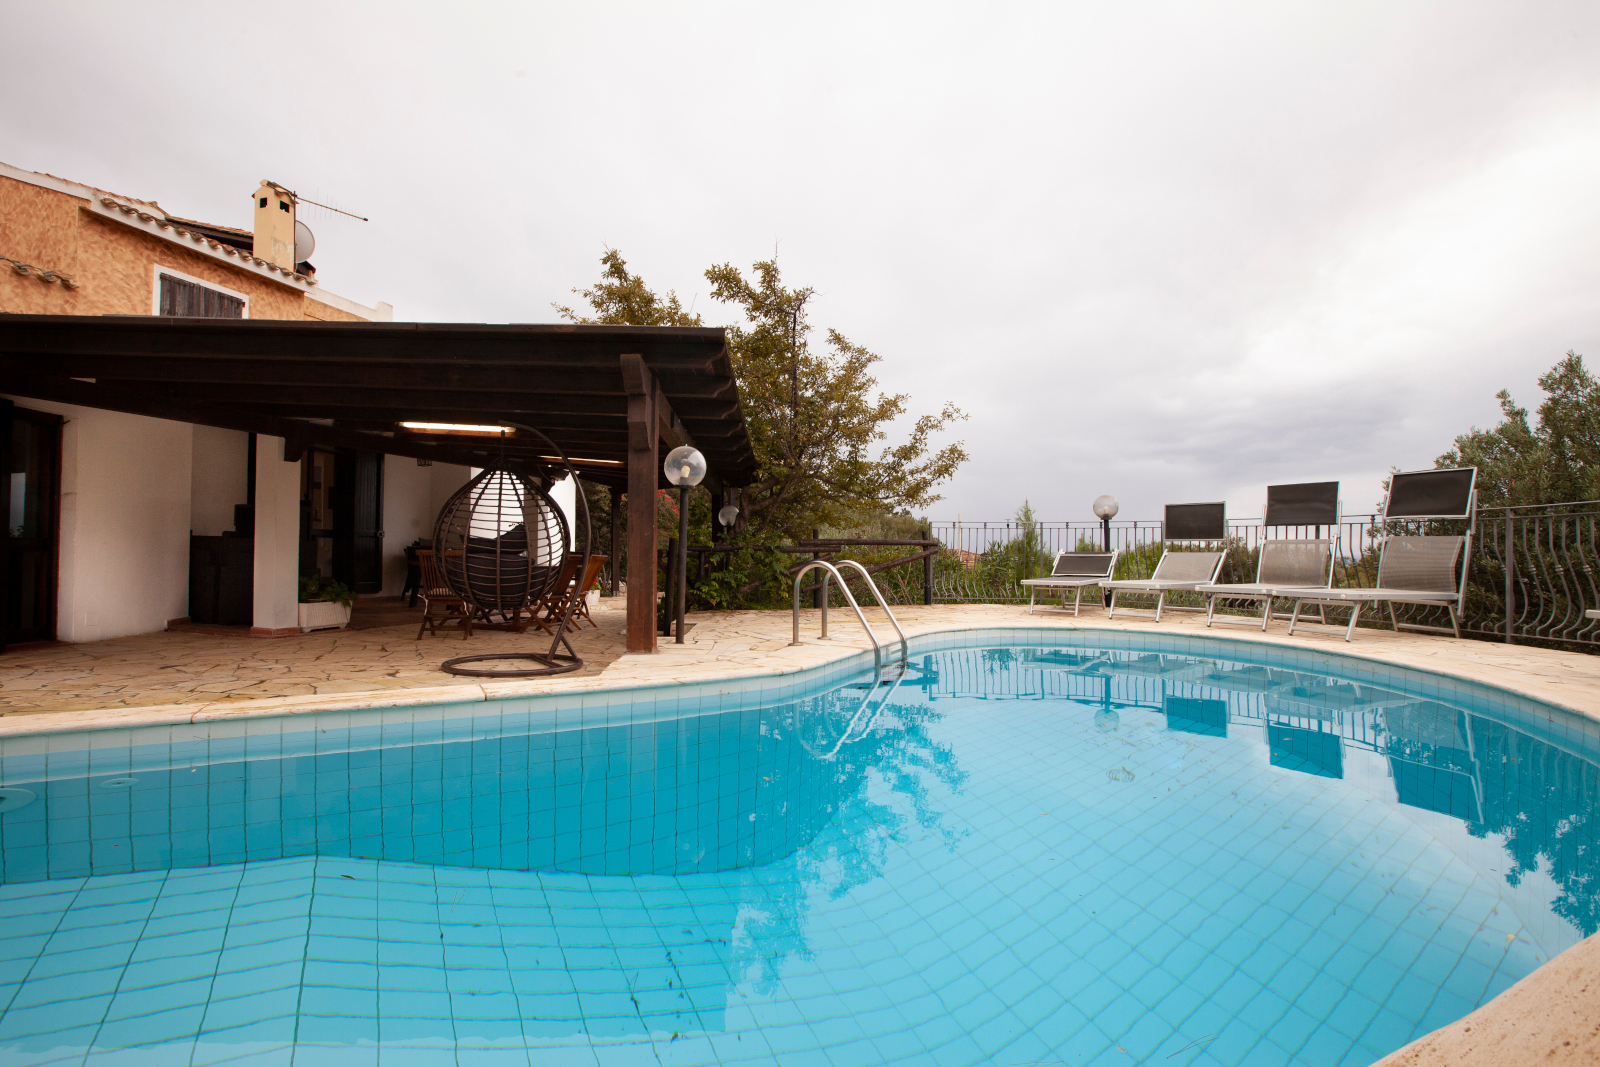 Townhouse cheaply in Torre delle Stelle